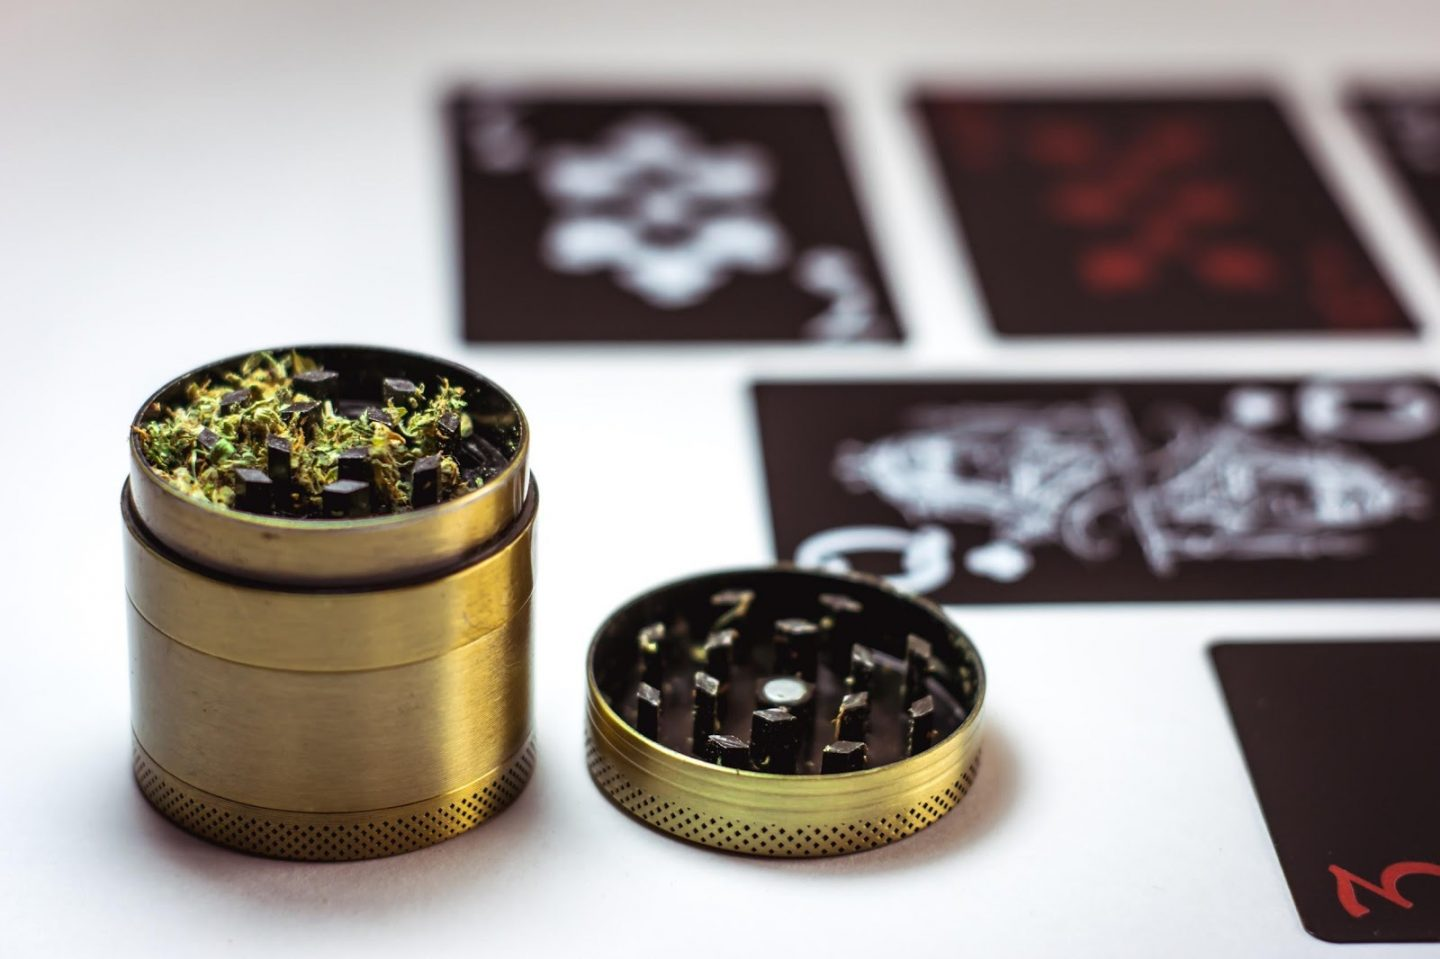 5 AMAZING BENEFITS OF USING A WEED GRINDER